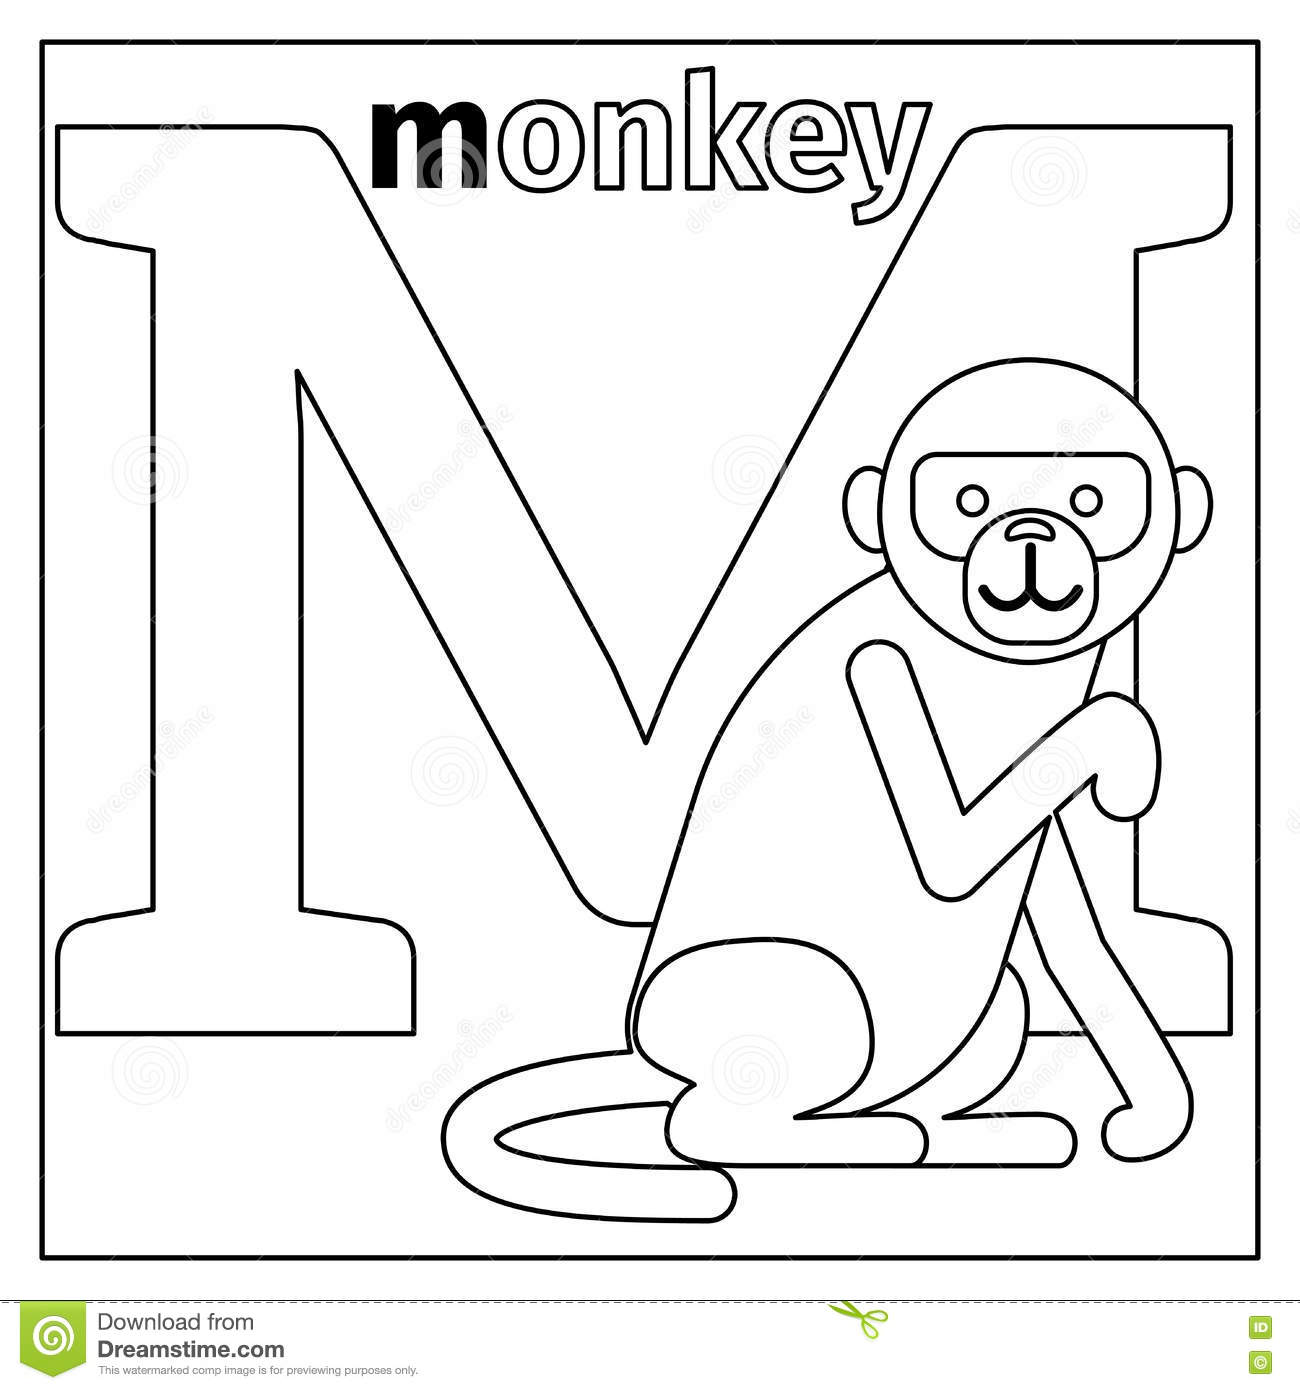 Letter m coloring pages - Monkey Letter M Coloring Page Stock Vector